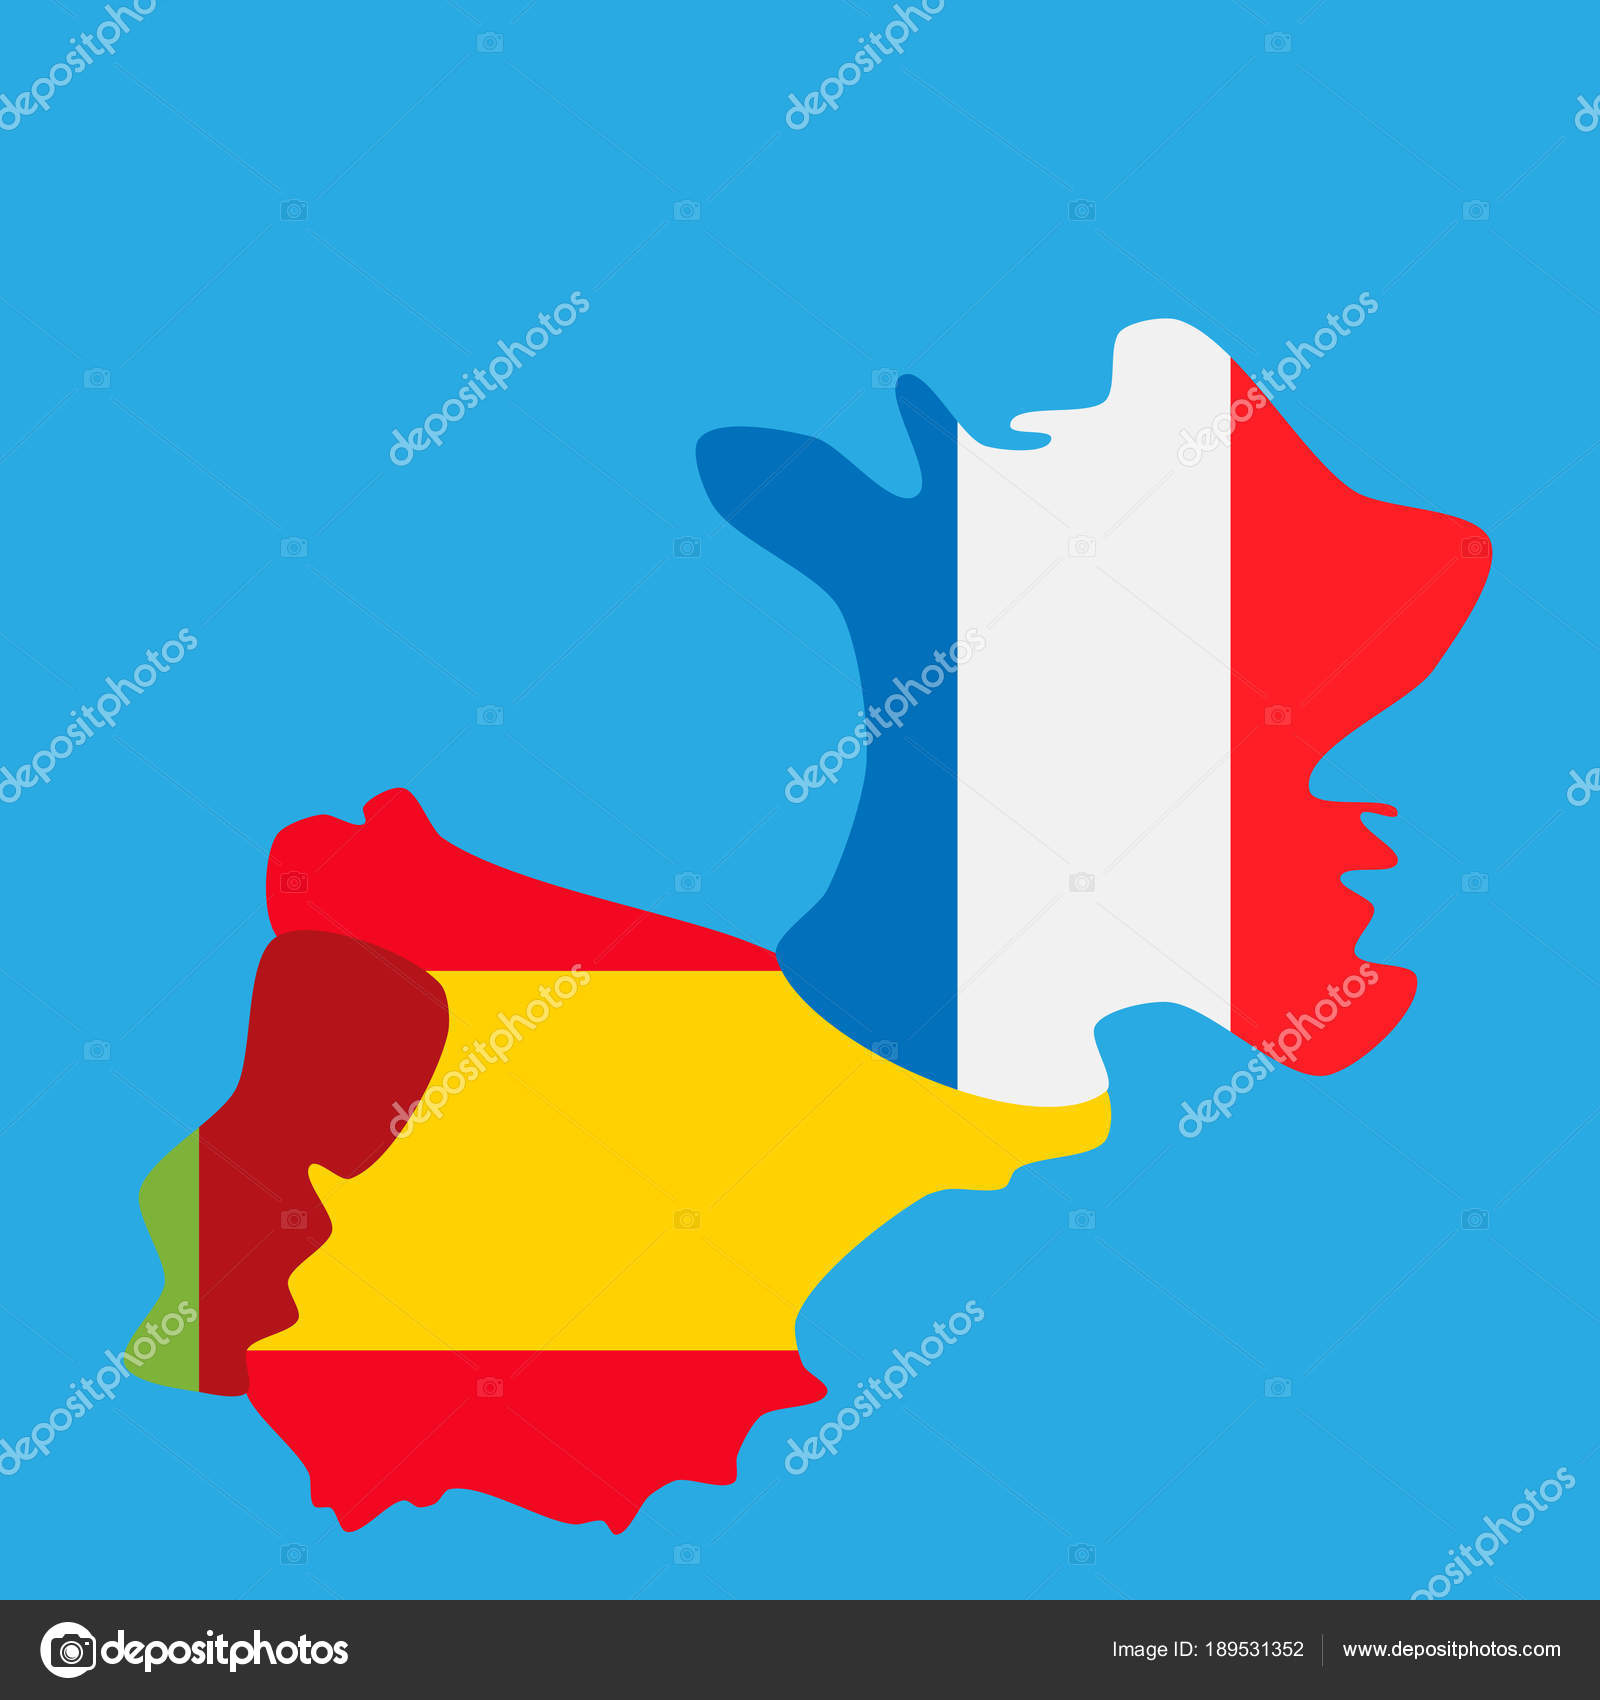 Map Of Portugal Spain France.Map Of Portugal Spain And France Map Of Portugal Spain